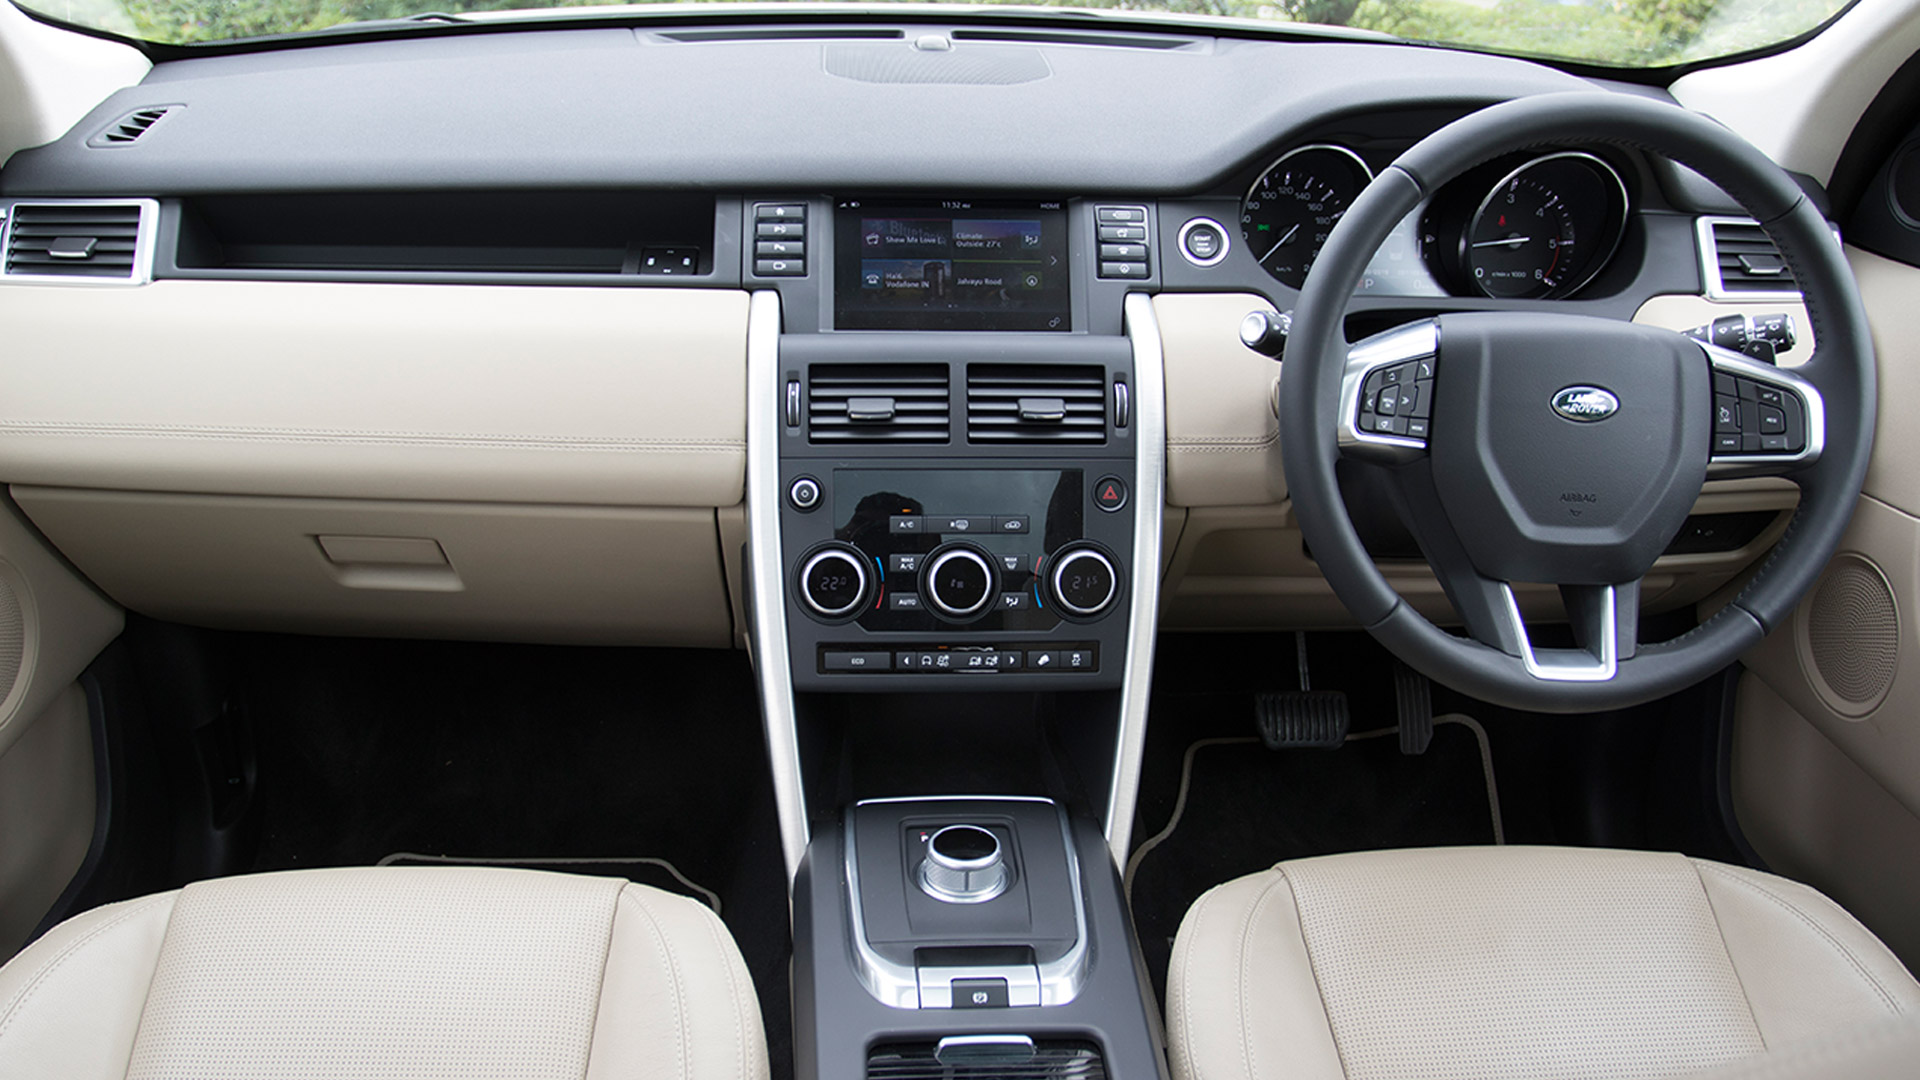 Land Rover Discovery Sport 2015 HSE Interior